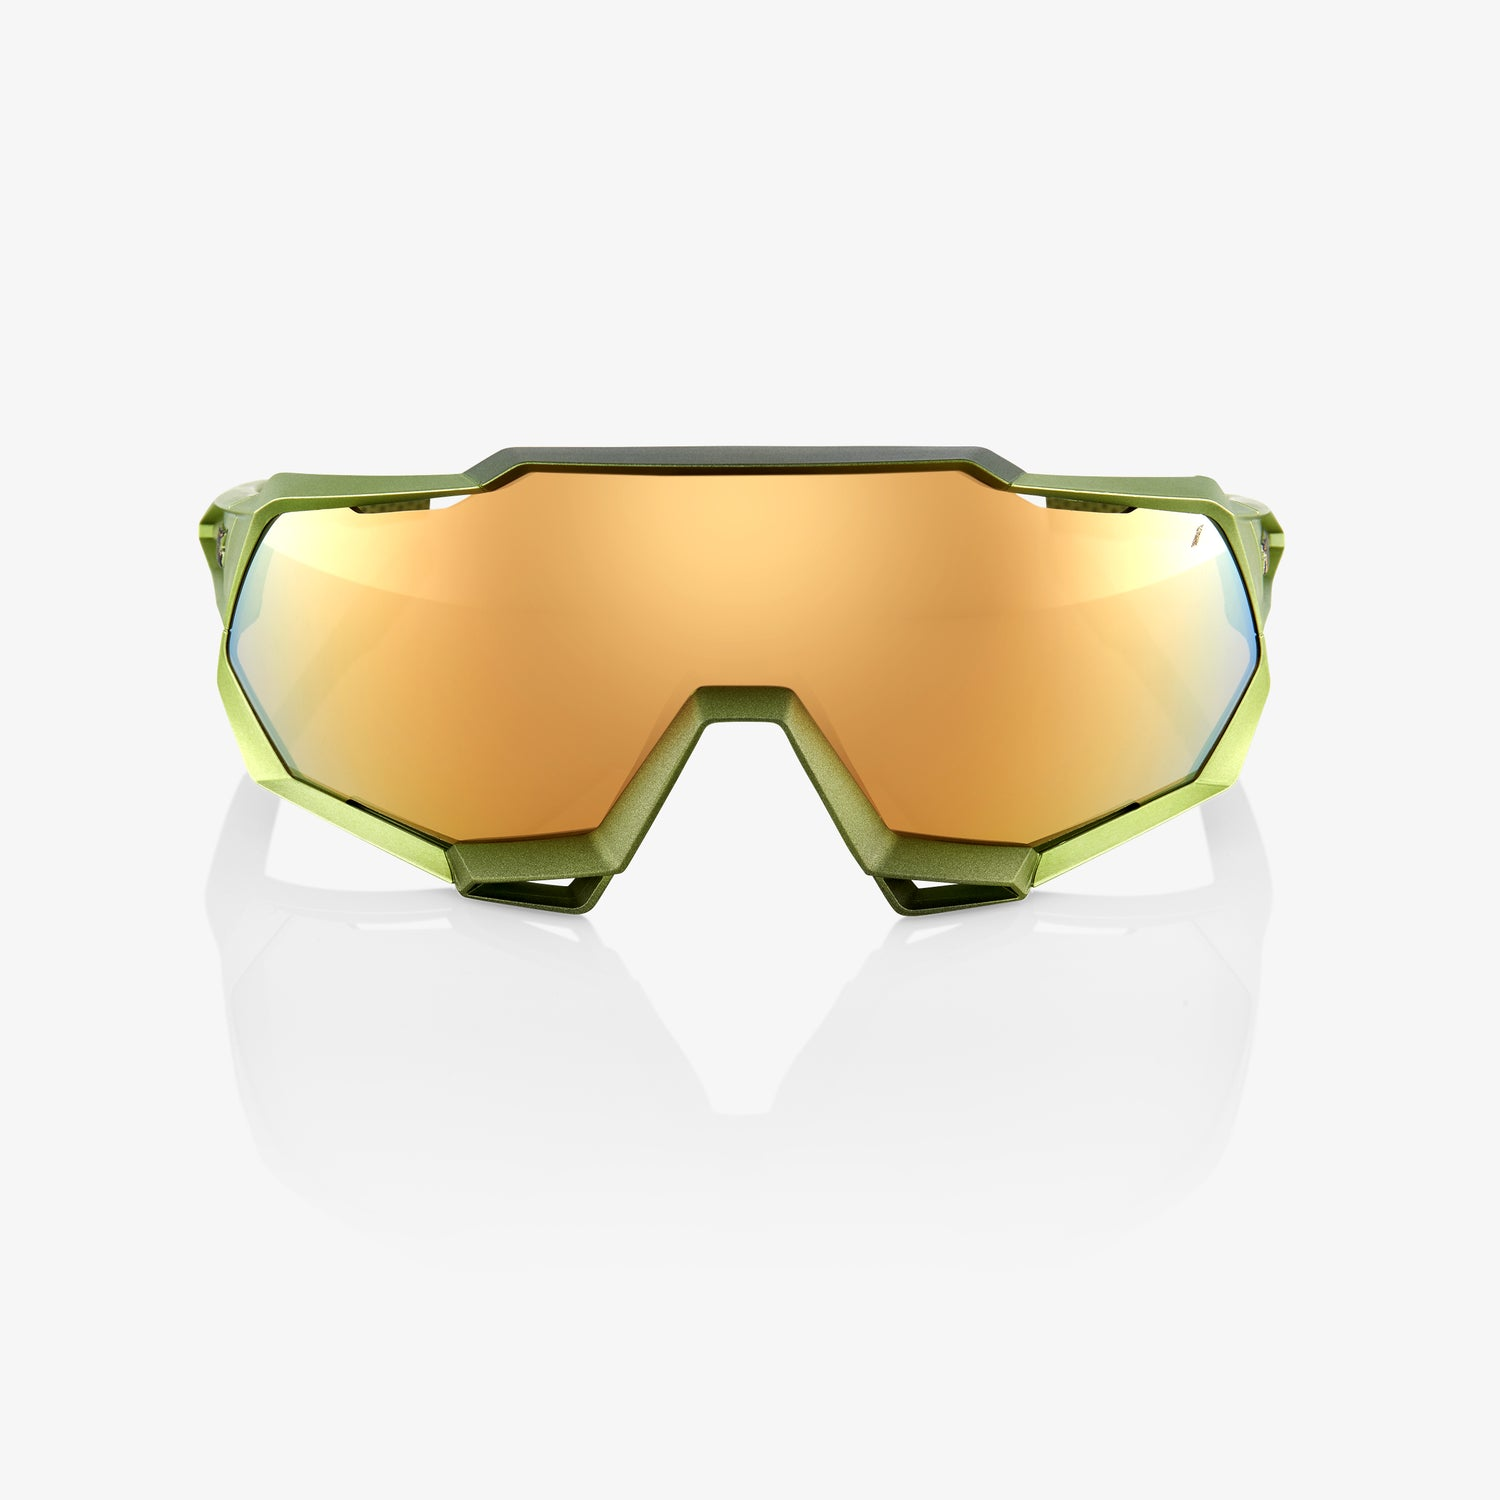 SPEEDTRAP - Matte Metallic Viperidae - Bronze Multilayer Mirror Lens